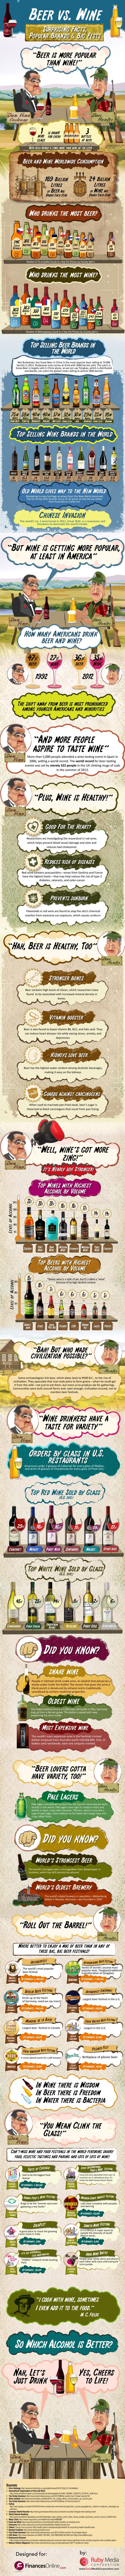 beer-vs-wine-infographic